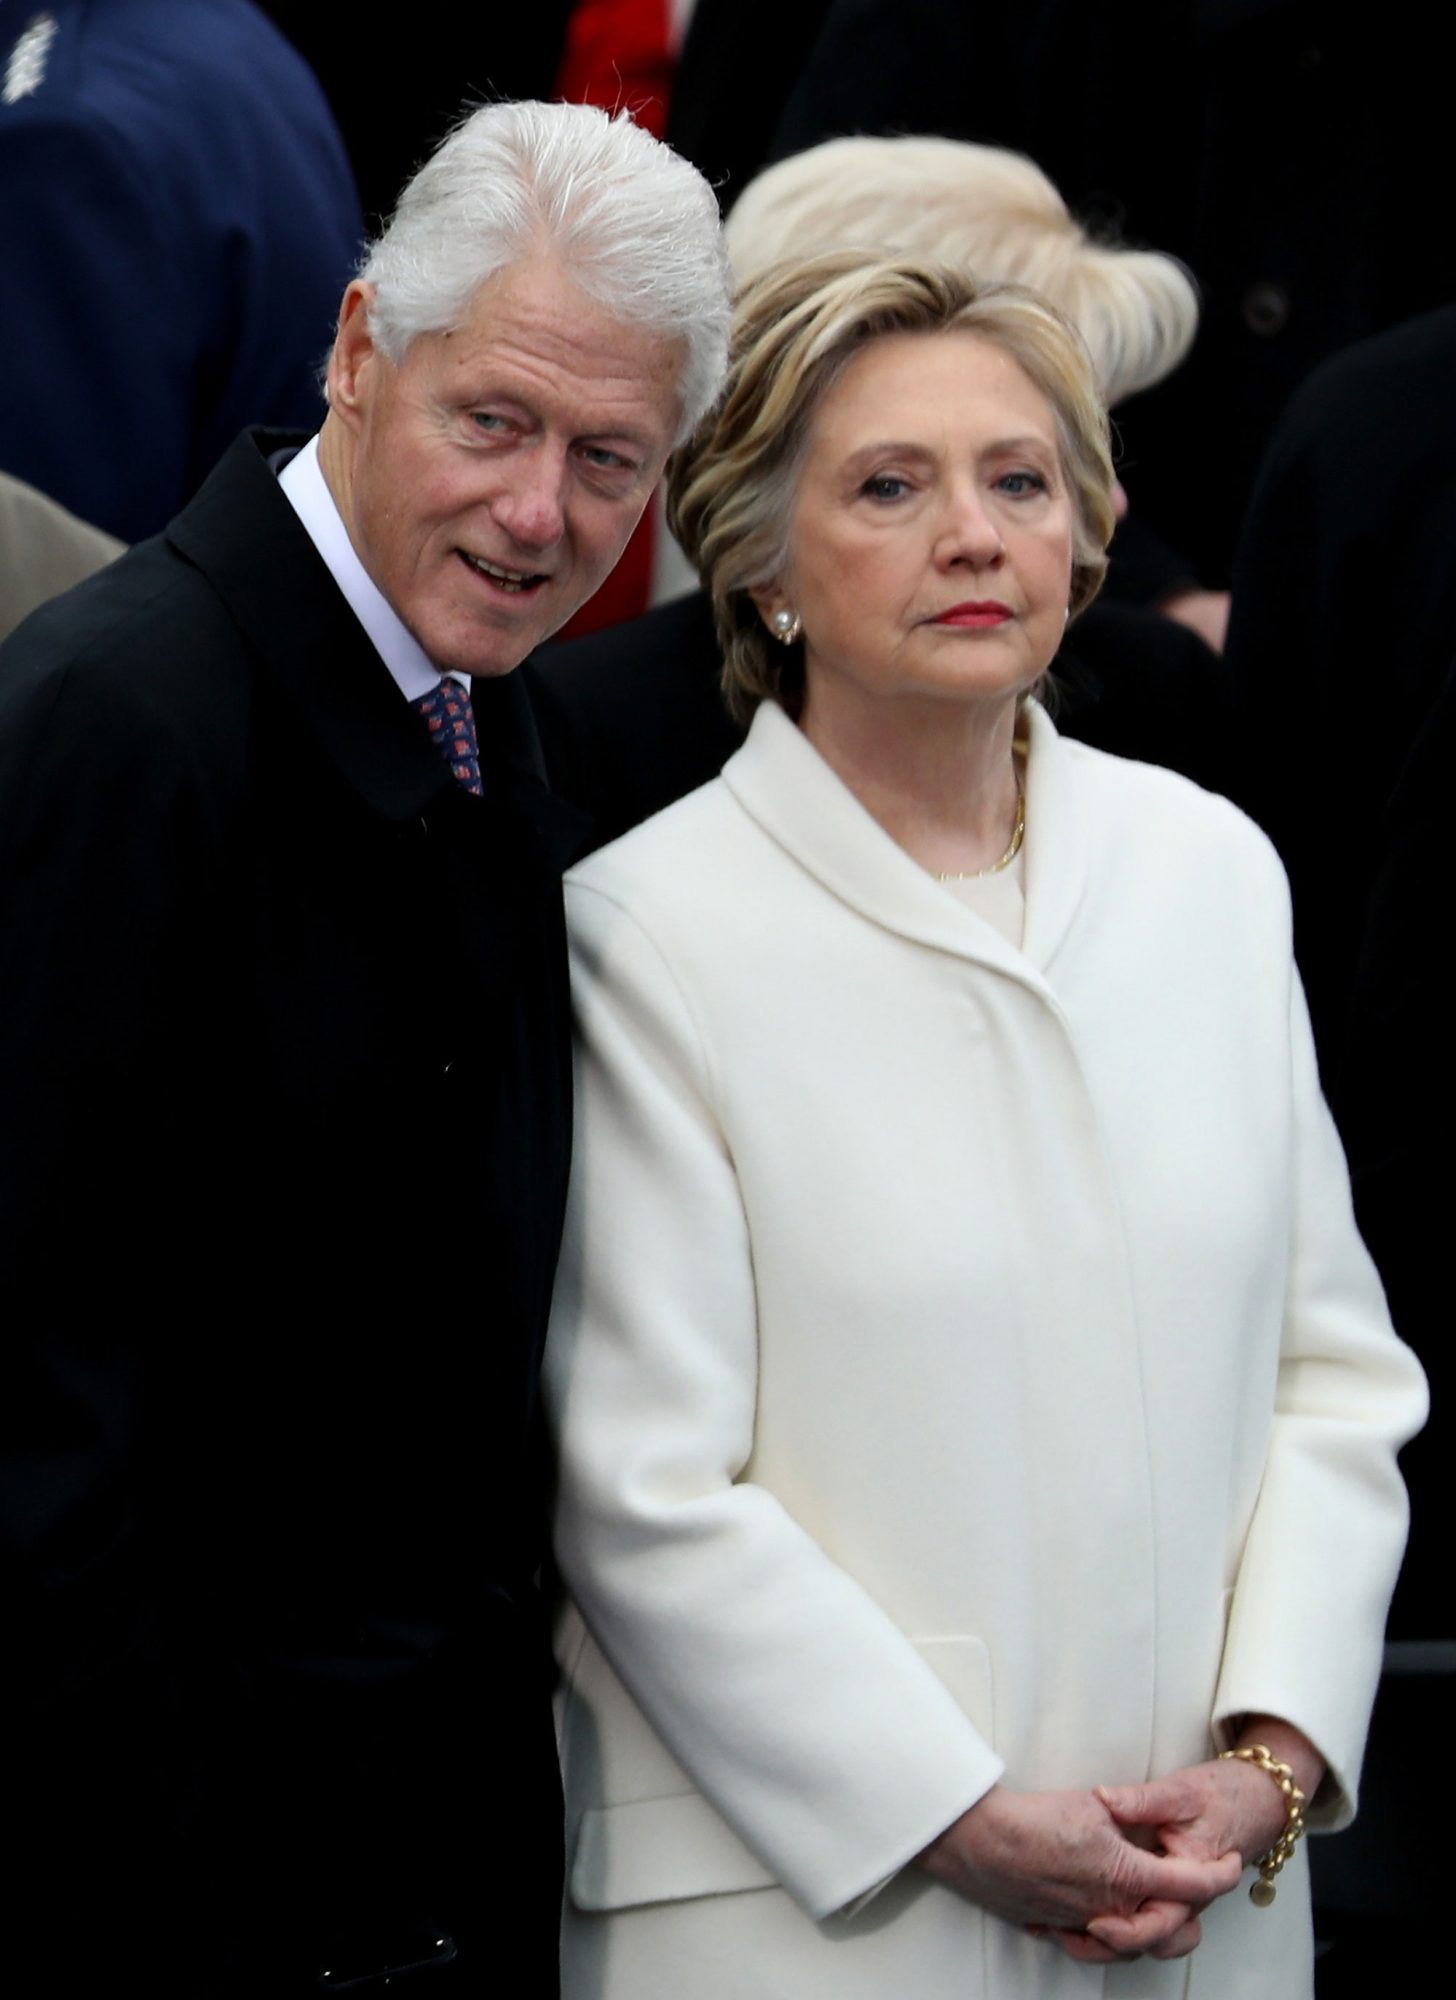 WASHINGTON, DC - JANUARY 20: Former President Bill Clinton and former Democratic presidential nominee Hillary Clinton stand on the West Front of the U.S. Capitol on January 20, 2017 in Washington, DC. In today's inauguration ceremony Donald J. Trump becomes the 45th president of the United States. (Photo by Joe Raedle/Getty Images)